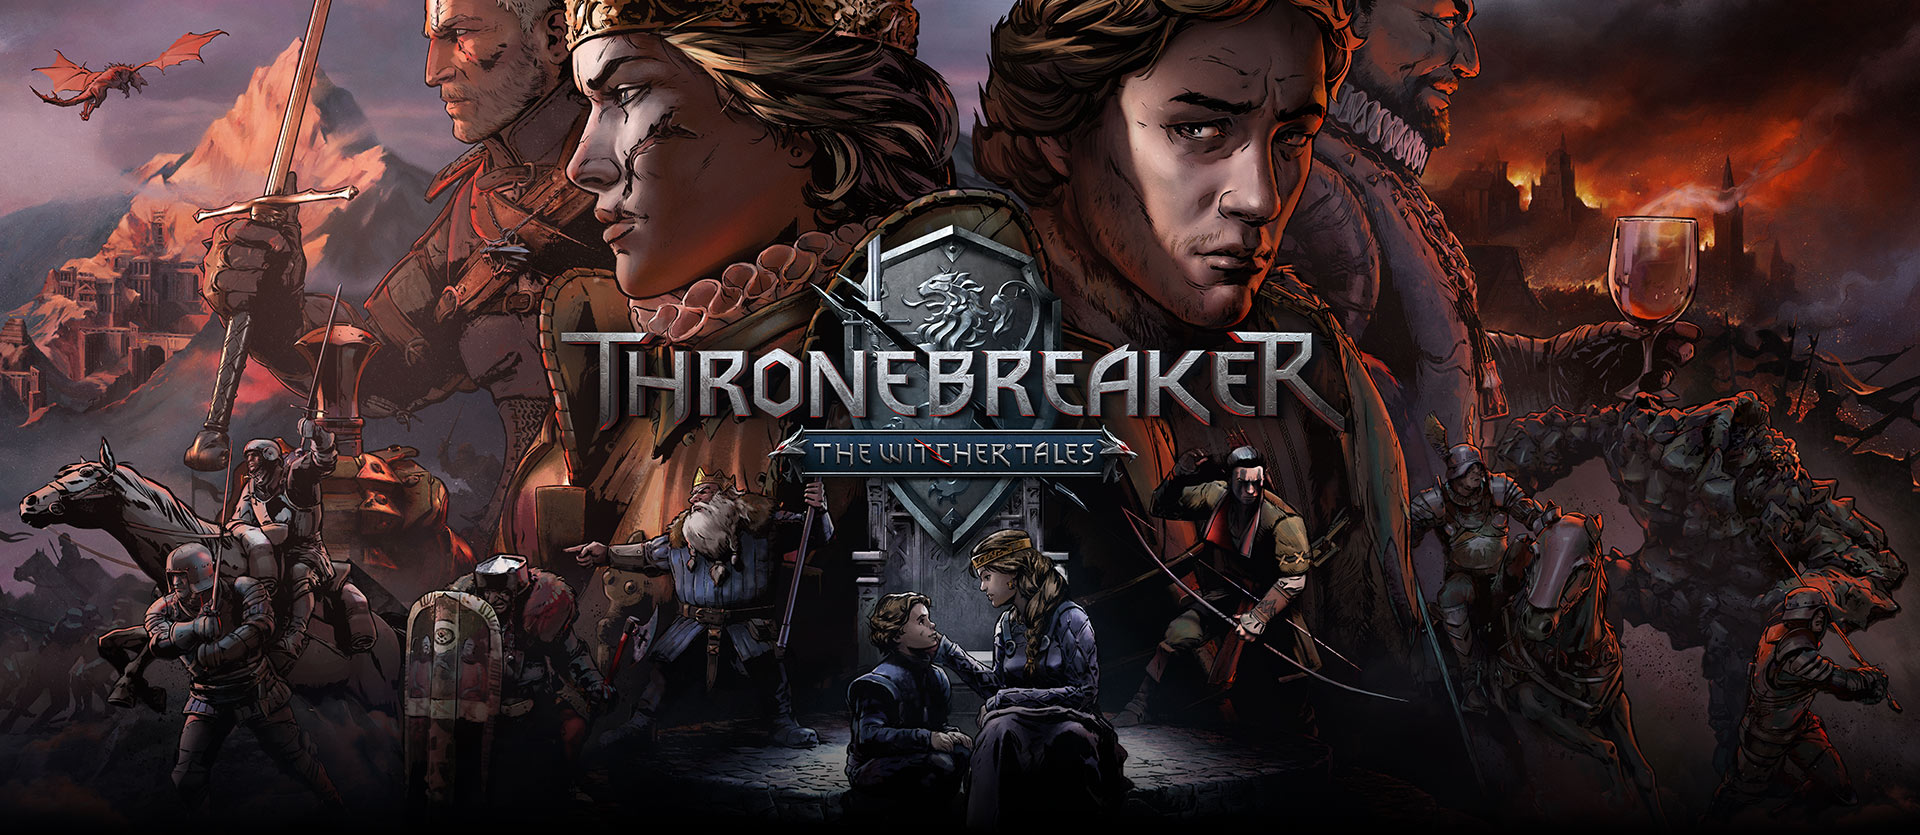 Thronebreaker: The Witcher Tales, comic book style image with two armies and their leaders on the sides